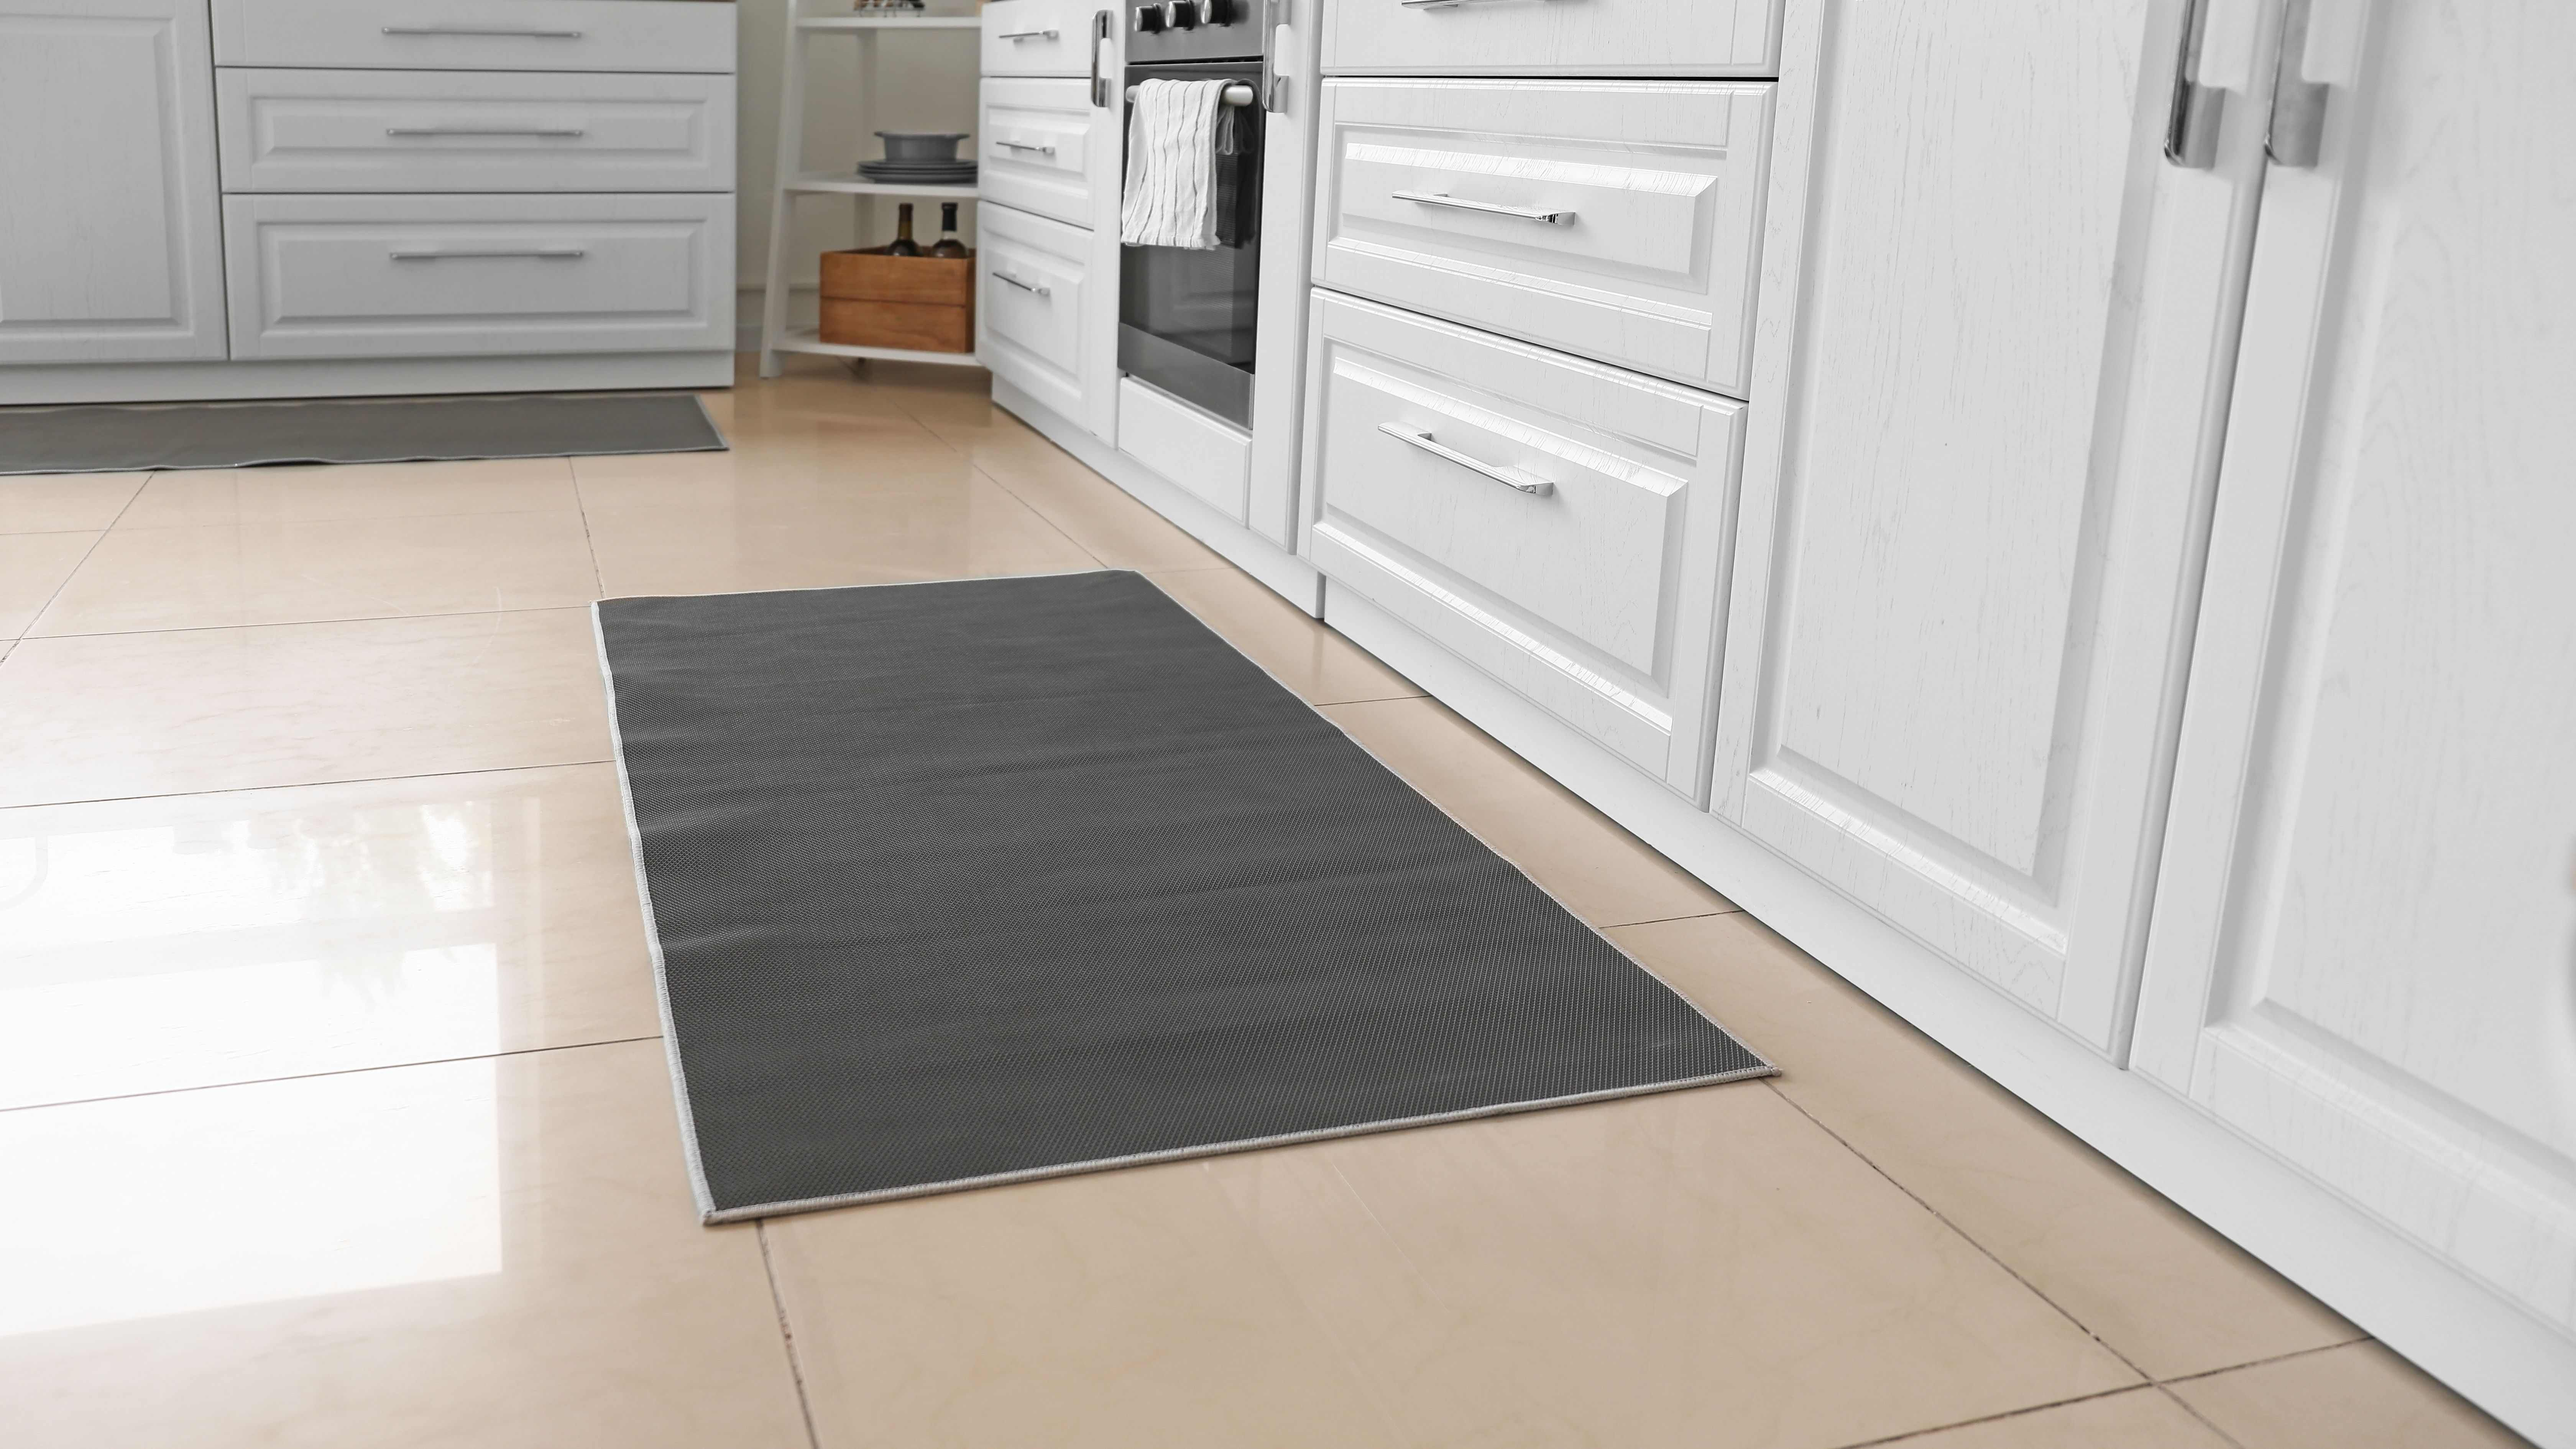 Kitchen rug buying guide